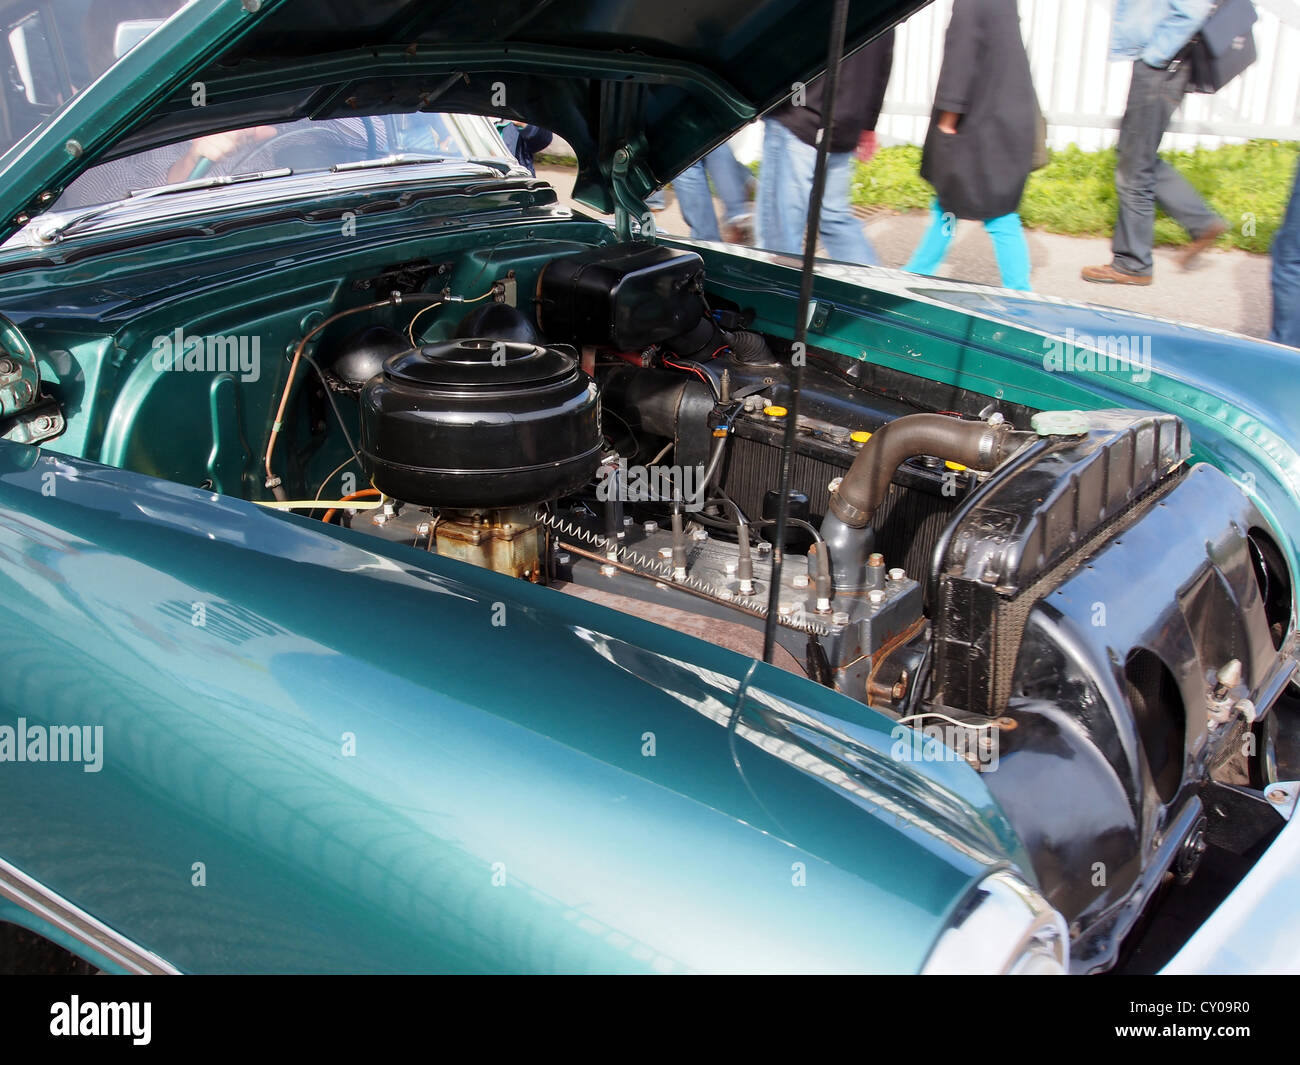 Pontiac Chieftain High Resolution Stock Photography and Images - Alamy